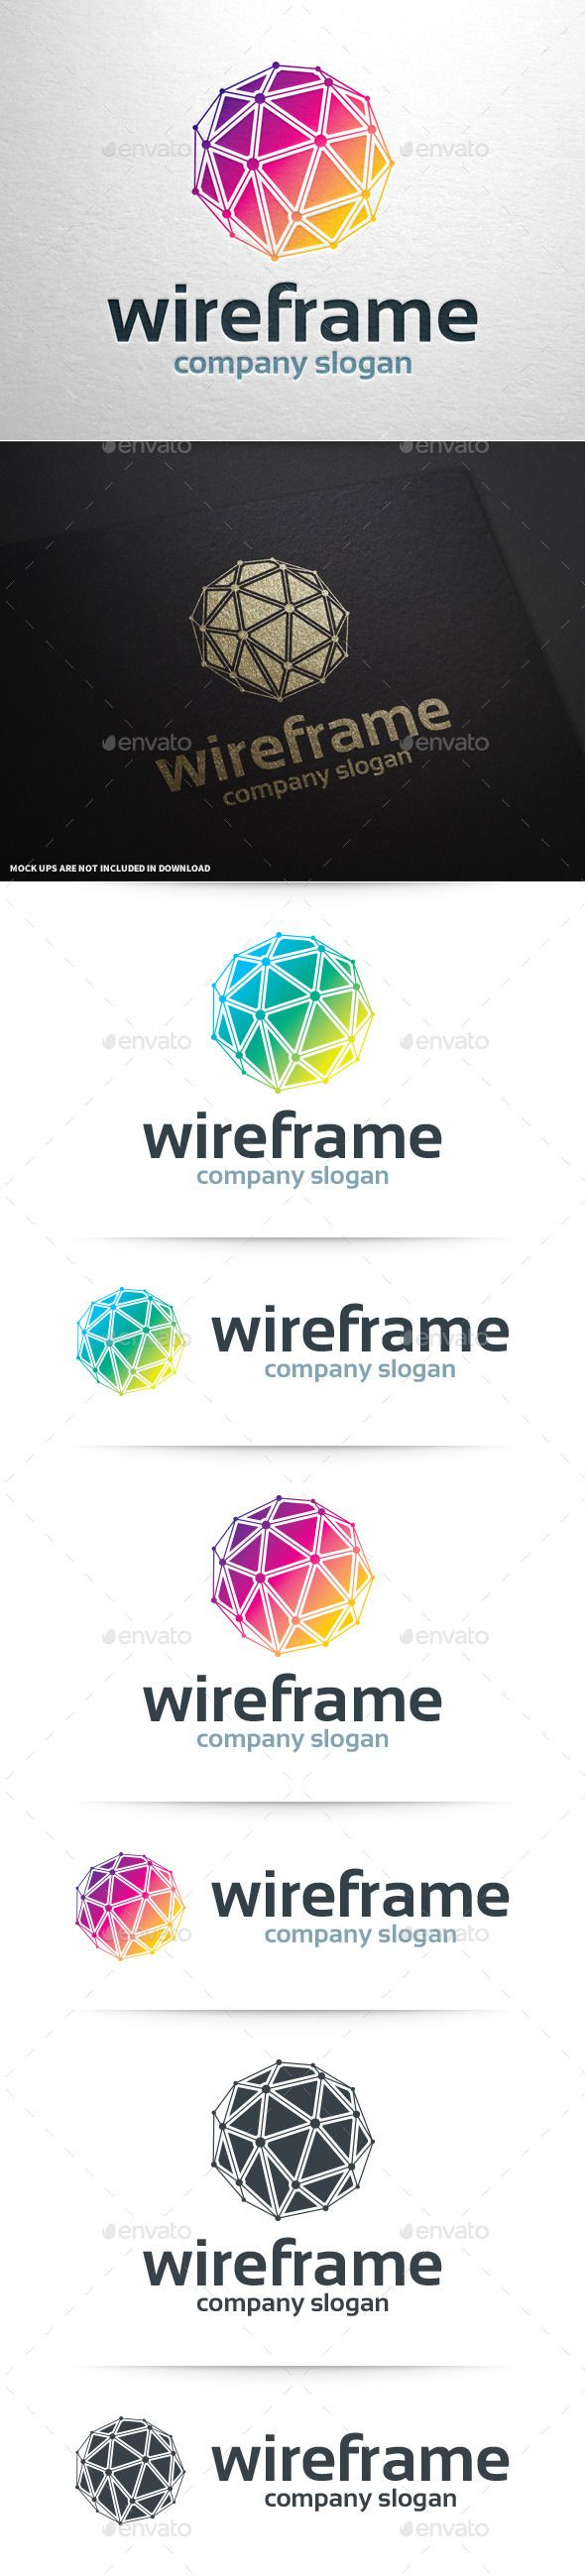 Wireframe Logo Tempalte #design #logotype Download: http://graphicriver.net/item/wireframe-logo-template/11097452?ref=ksioks